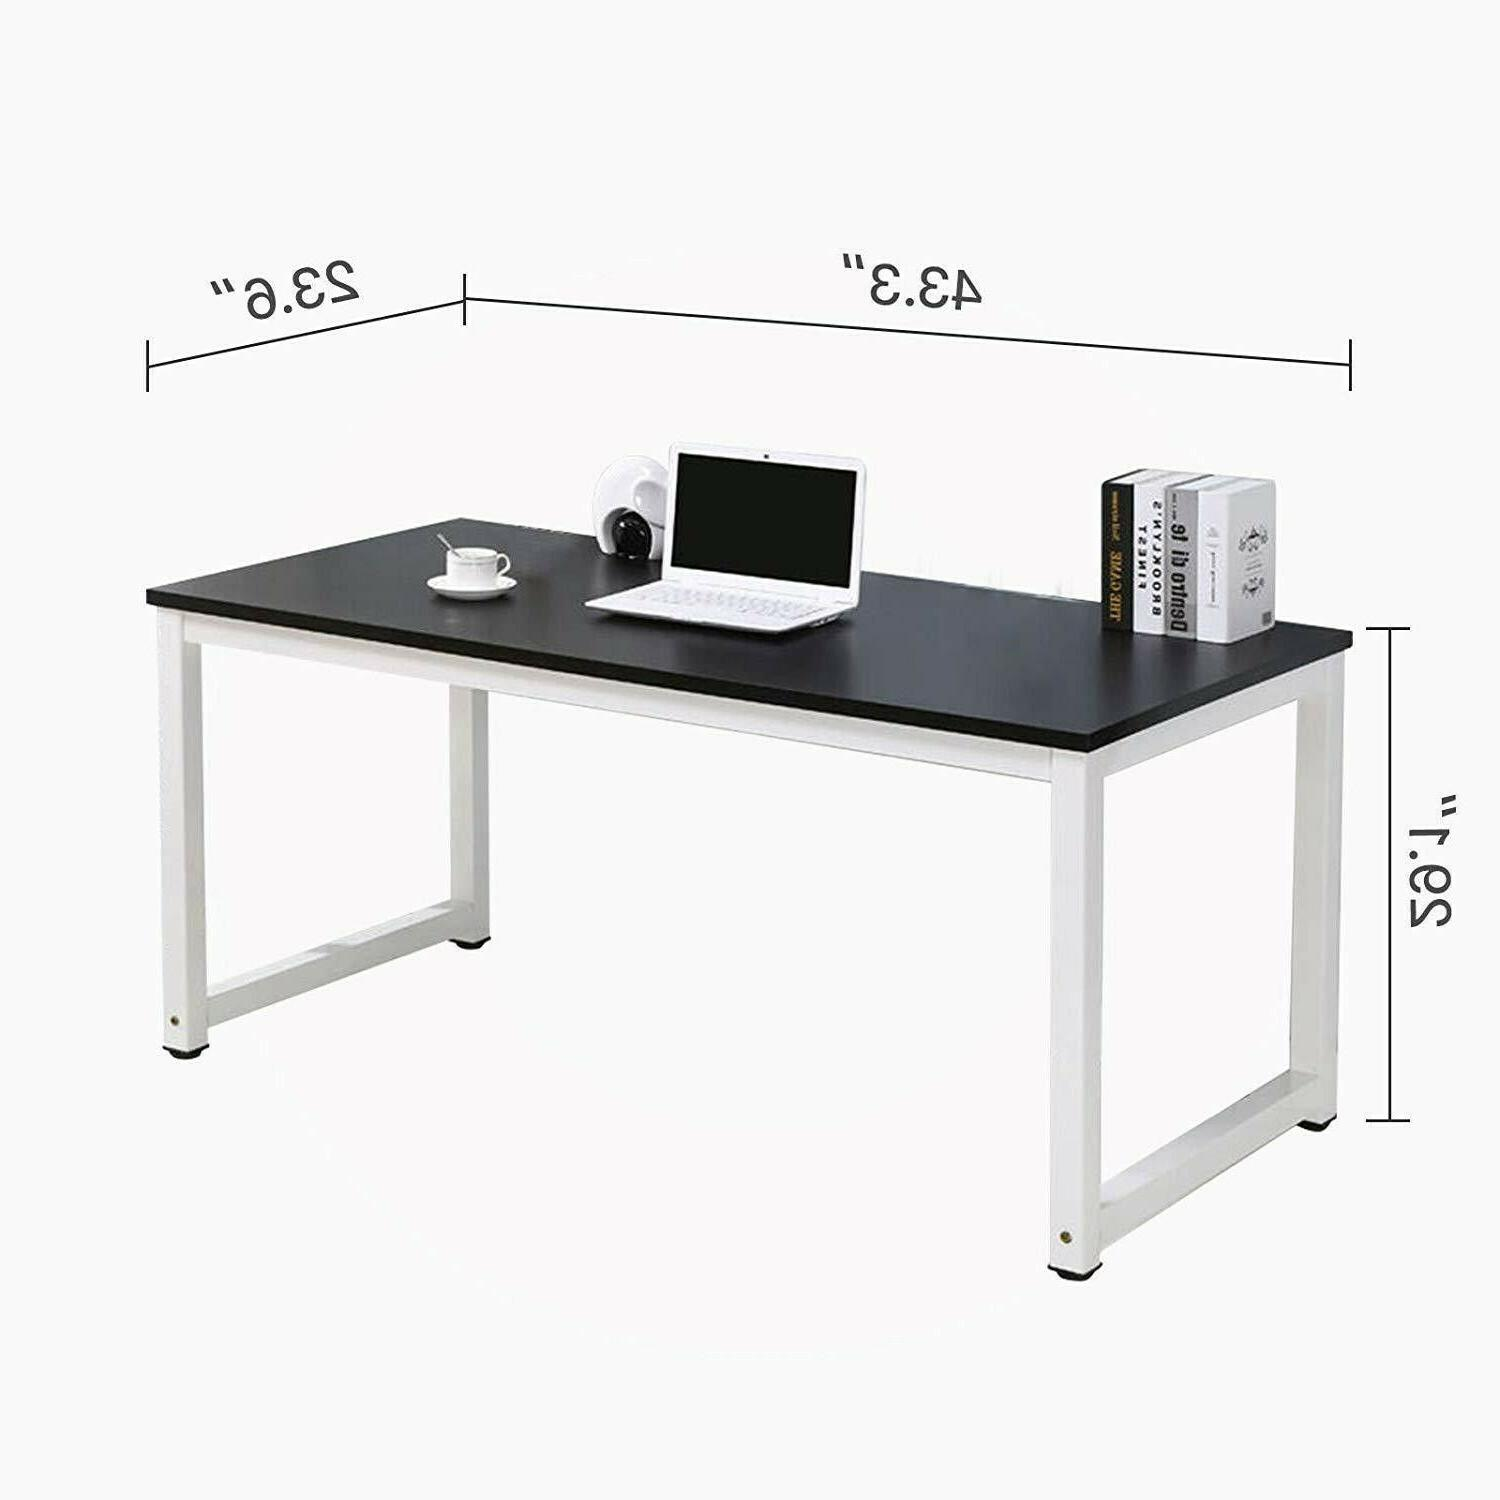 43inch MDF Office Desk PC Table Study Of